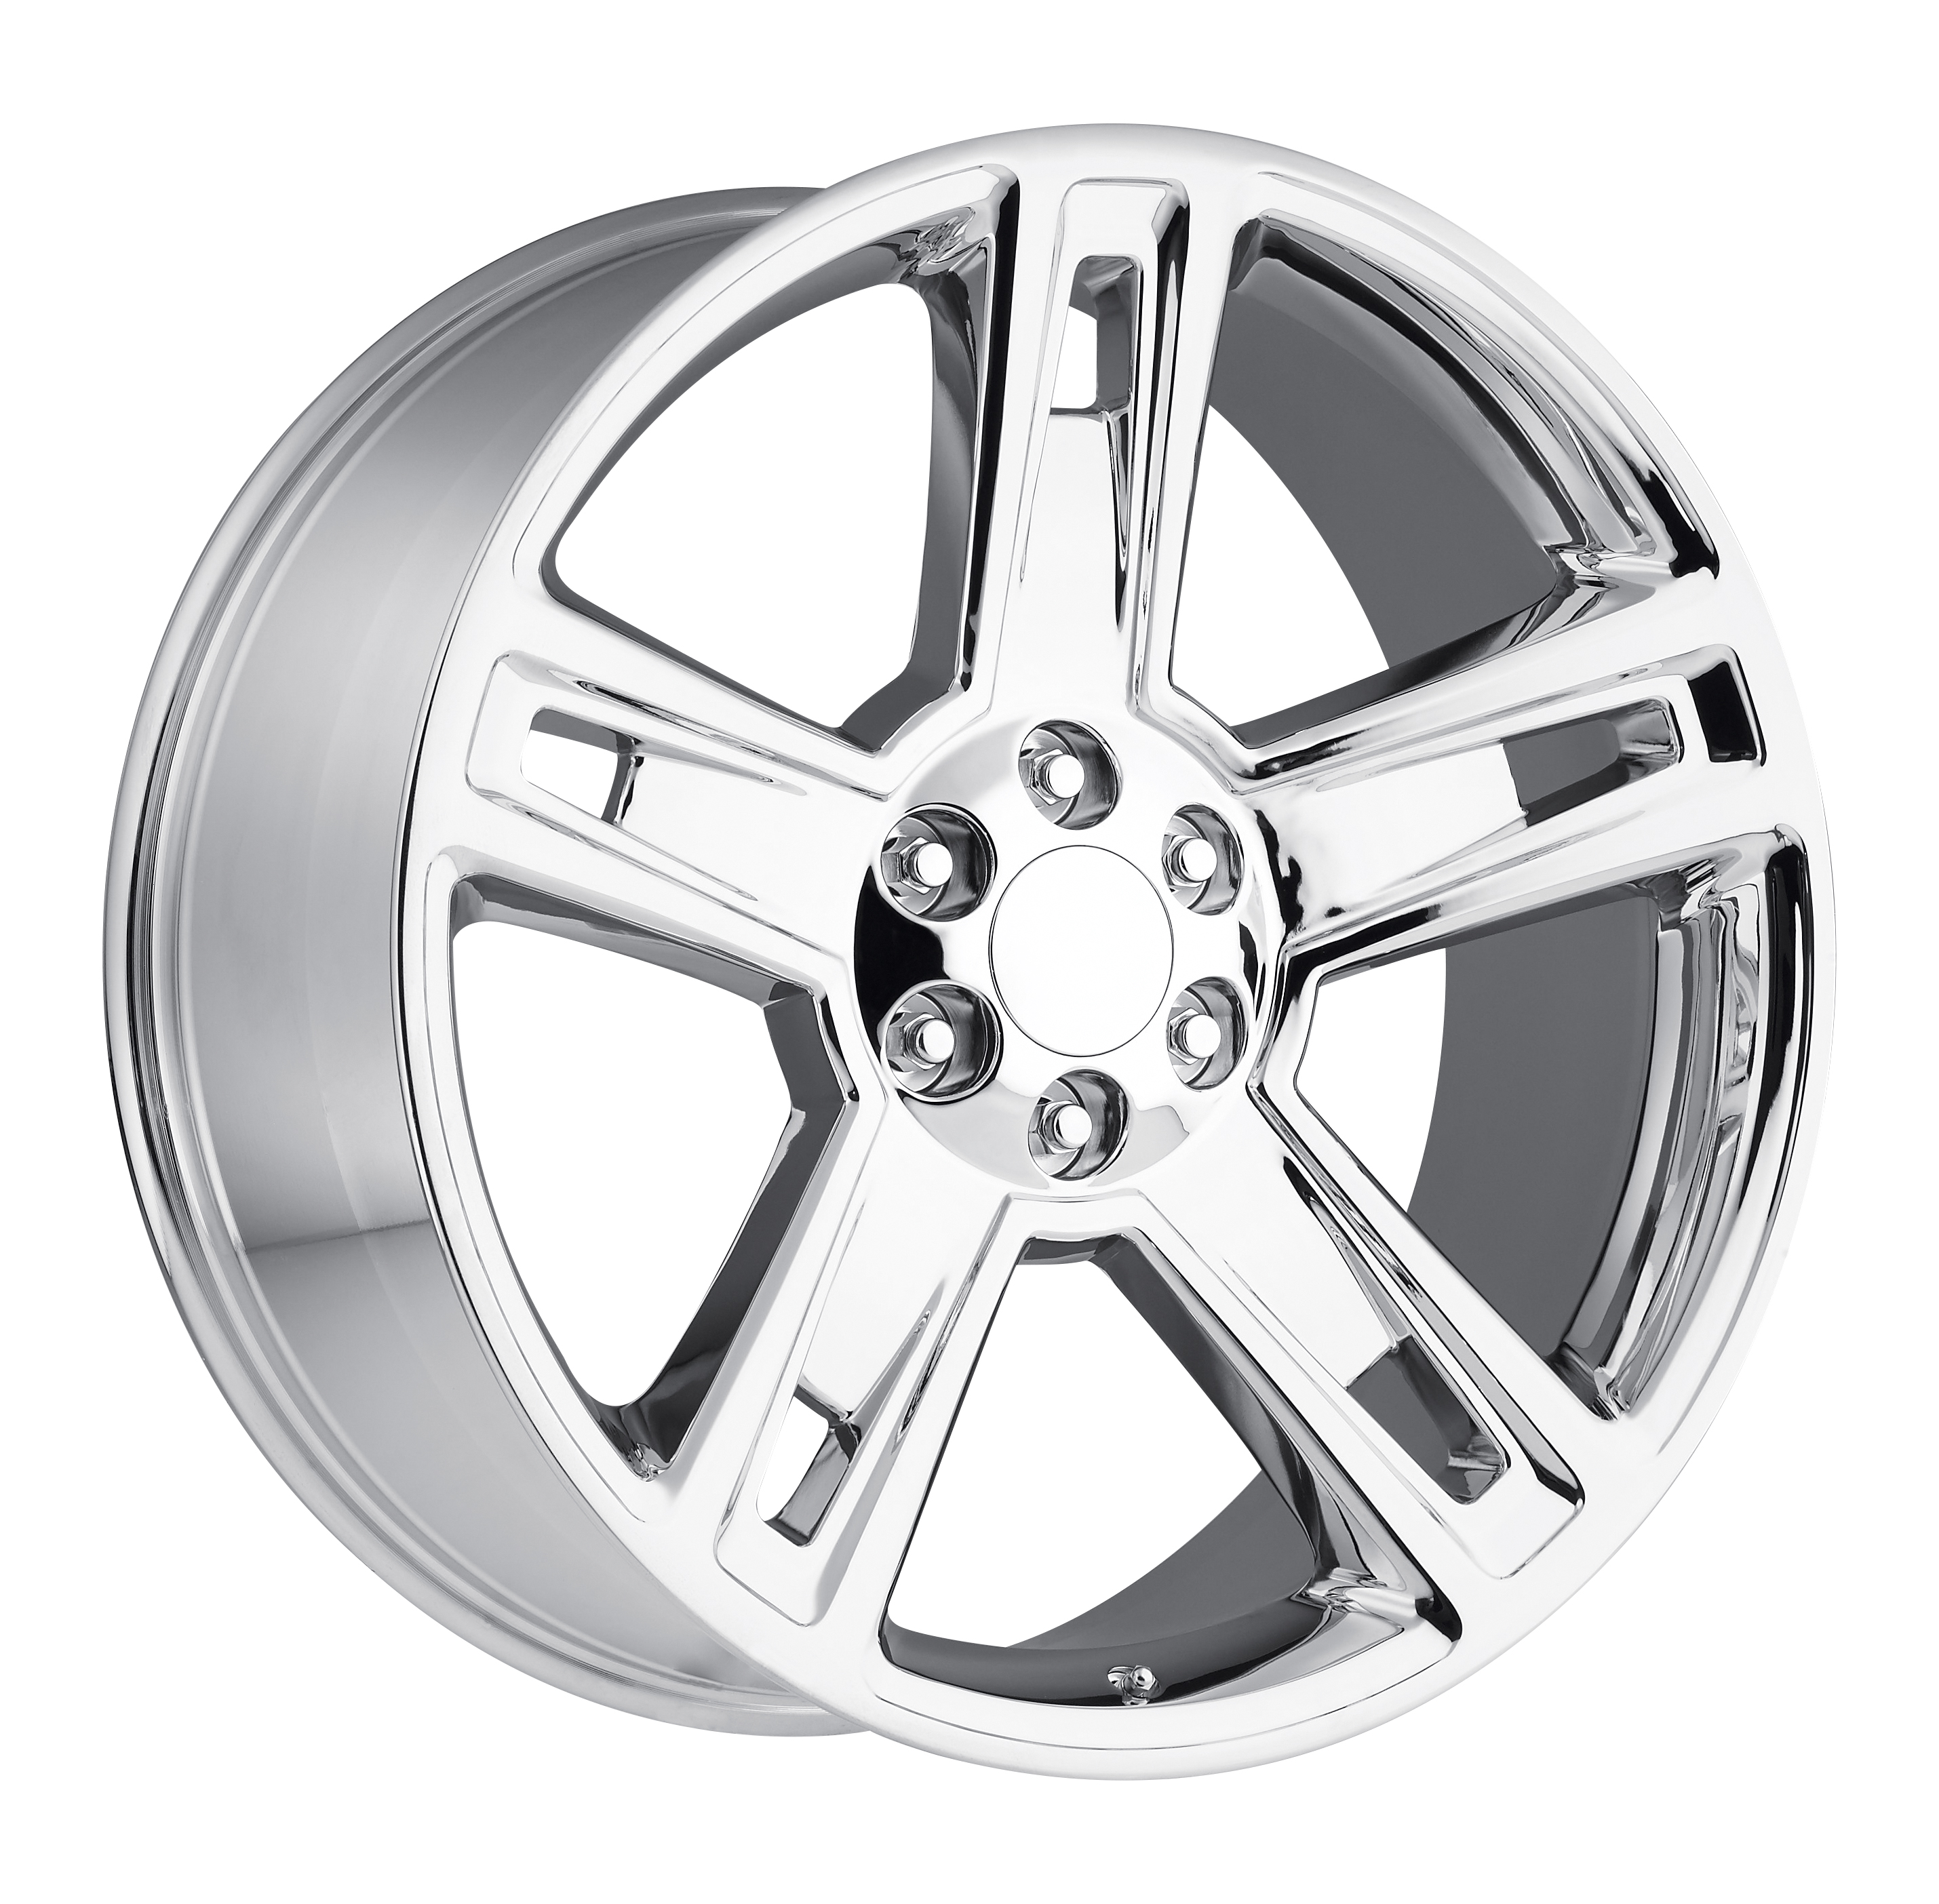 2015 Chevrolet Silverado 1500 Chrome Replicas : Wheels : JK ...